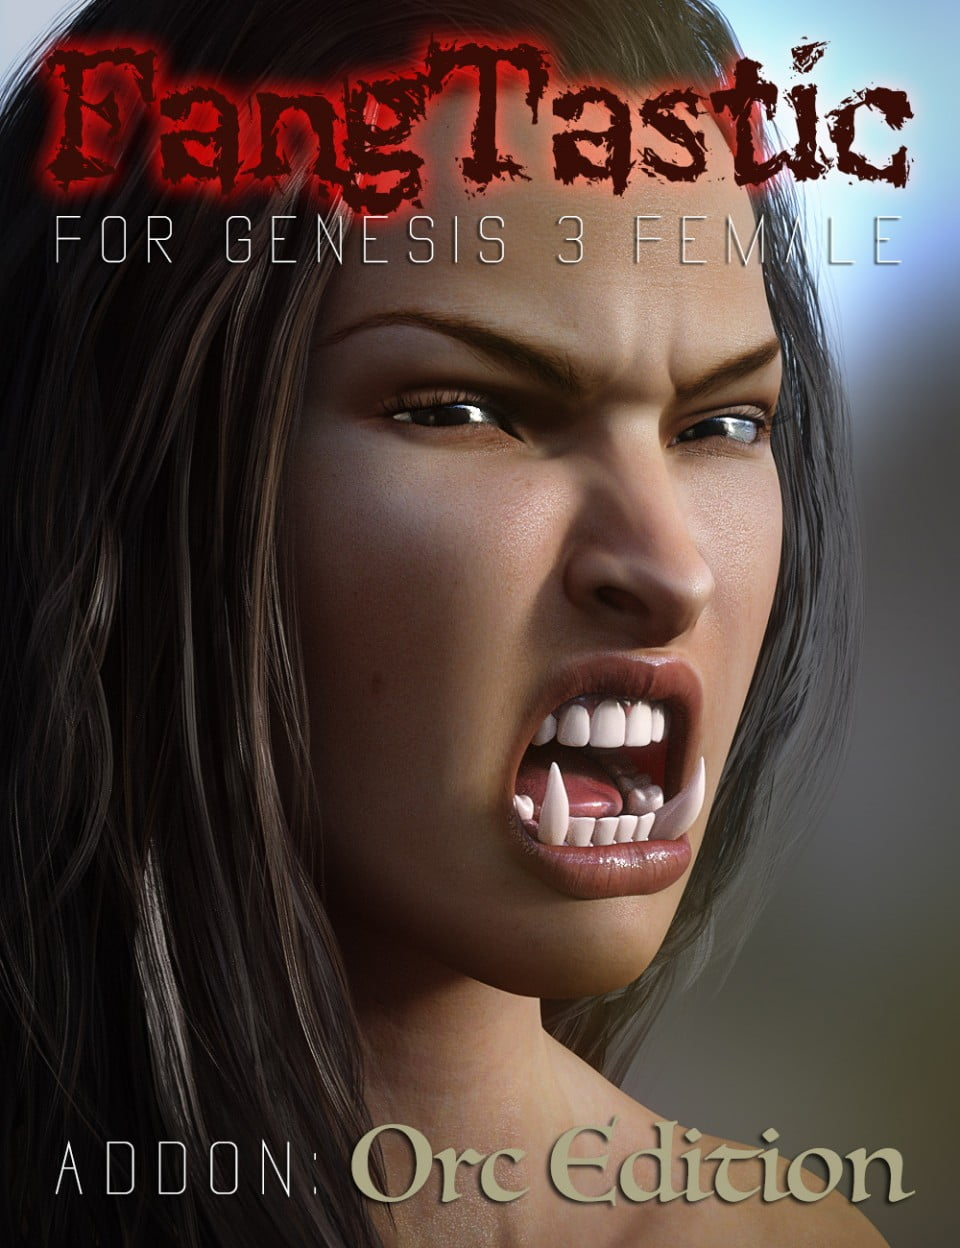 00-main-fangtastic-addon-orc-for-genesis-3-females-daz3d